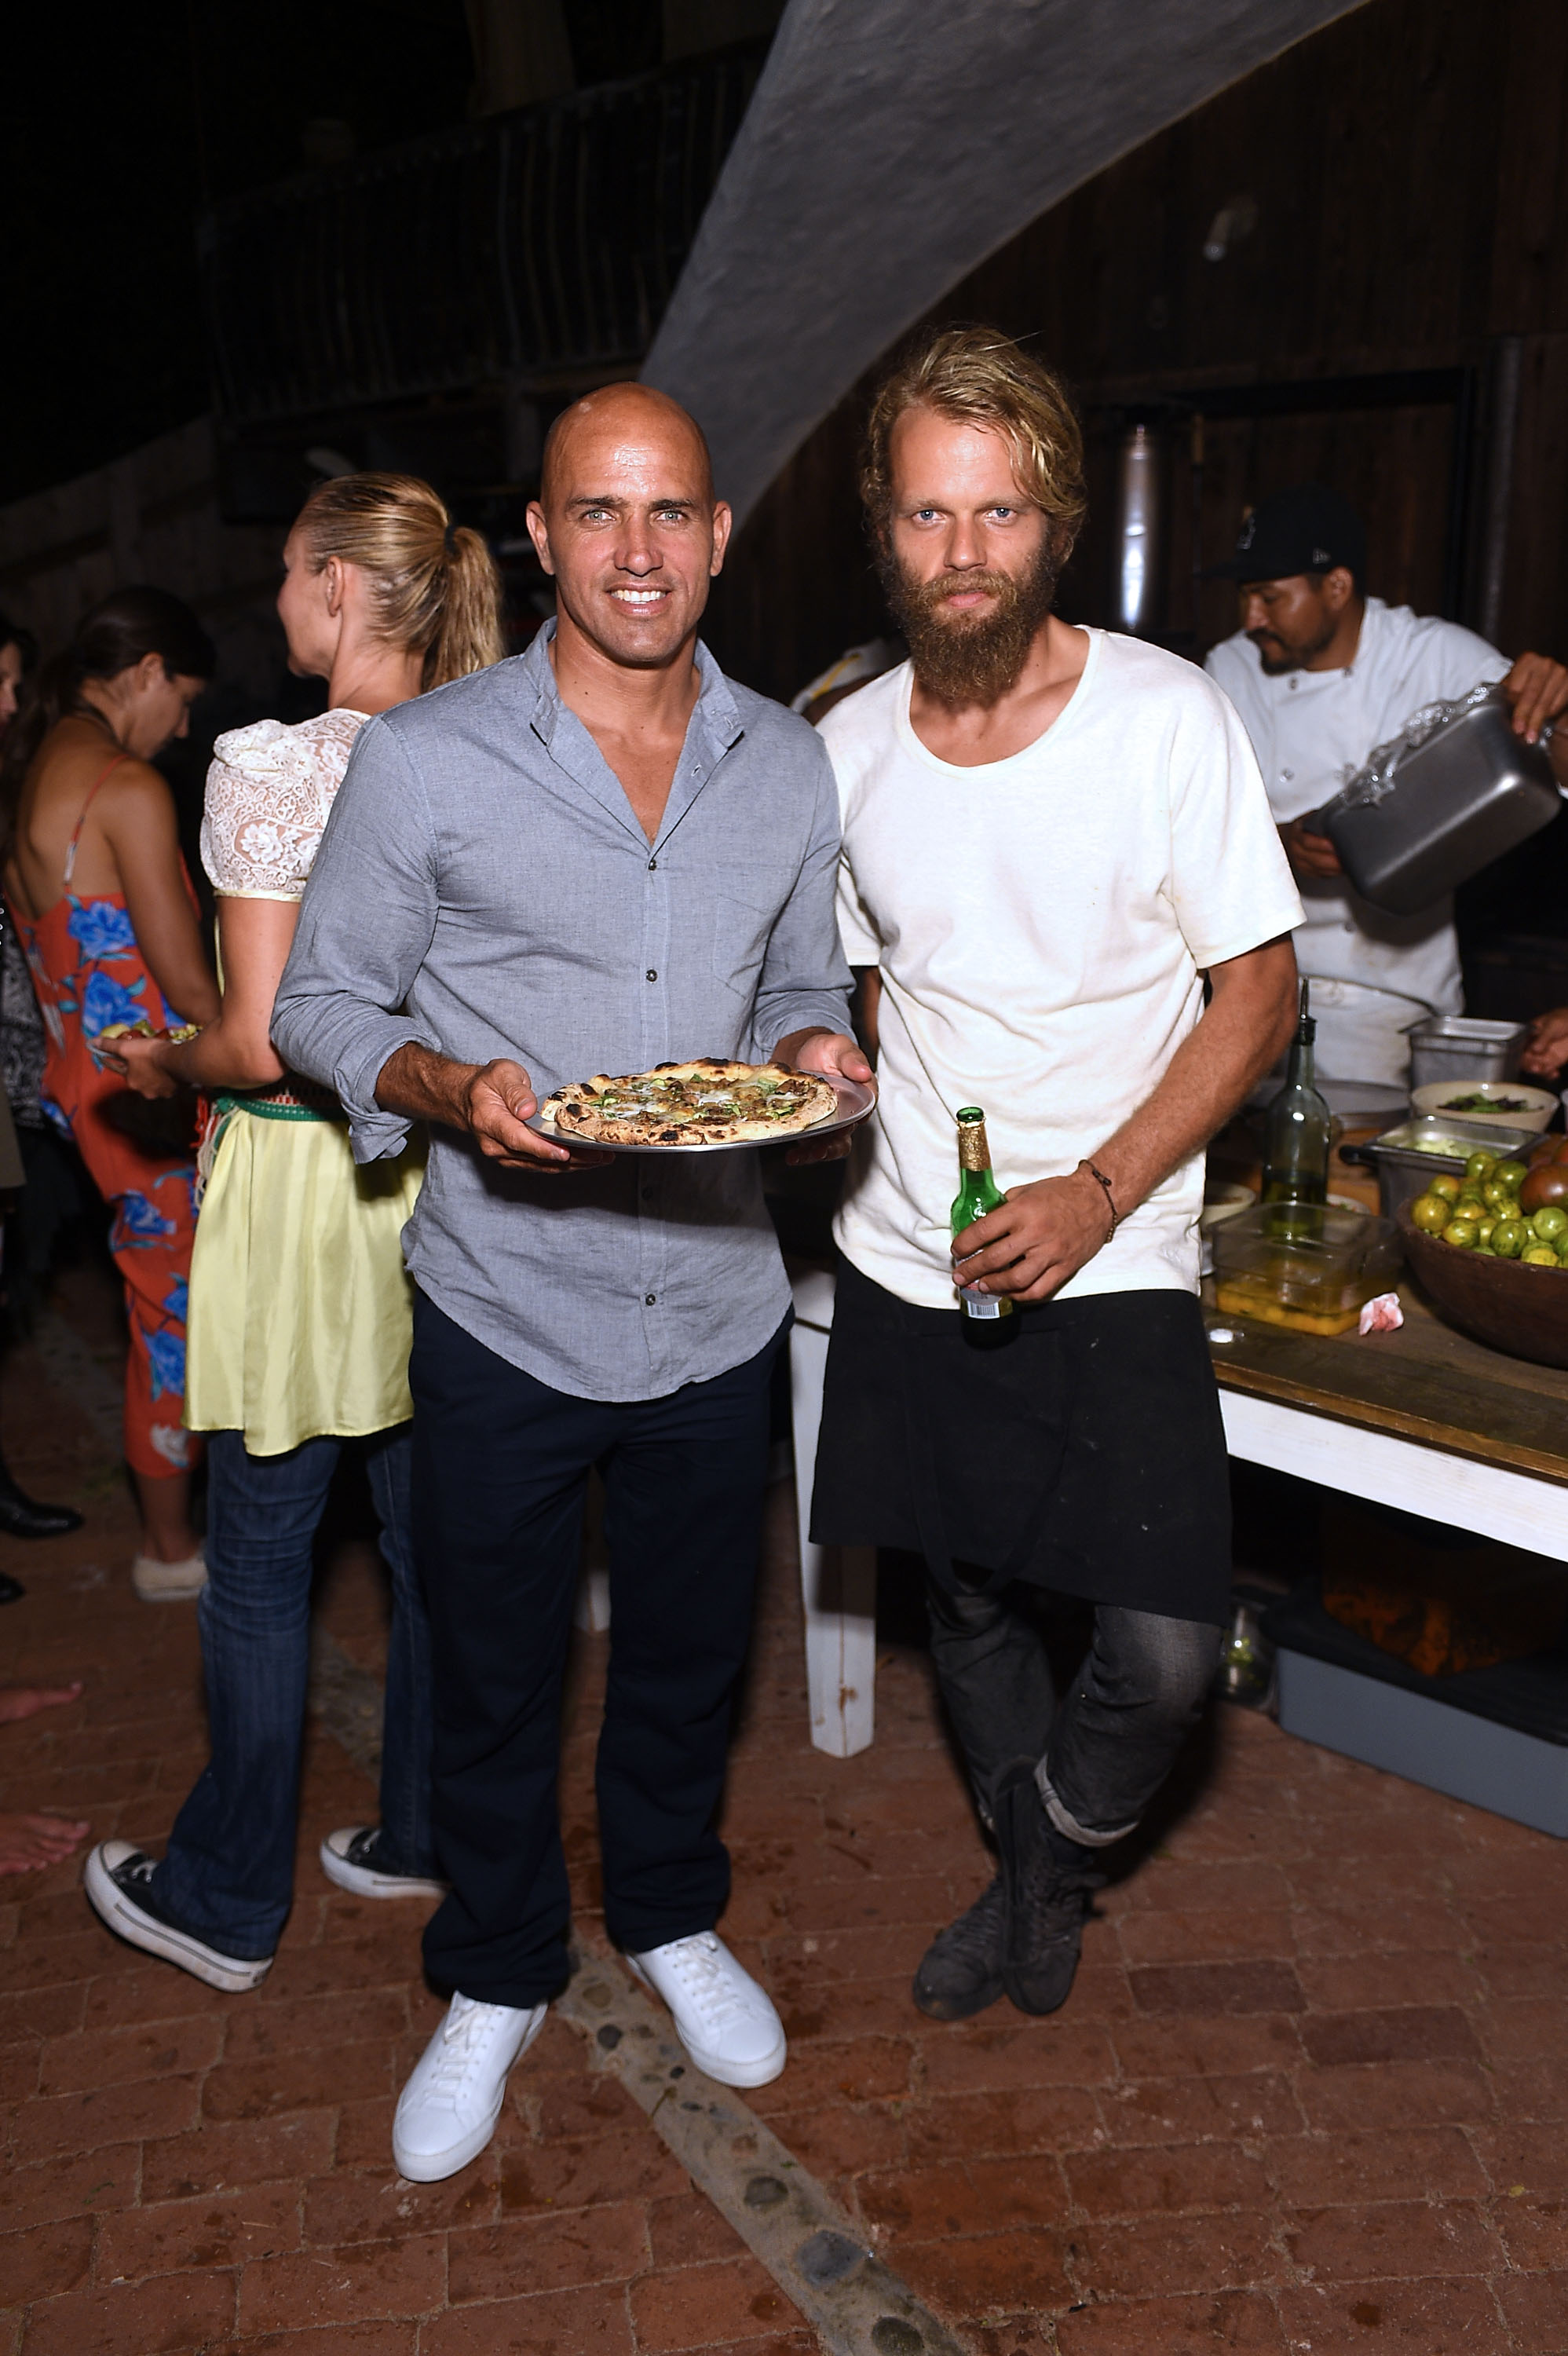 Kelly Slater, John Moore and Friends Celebrate the Launch of Outerknown